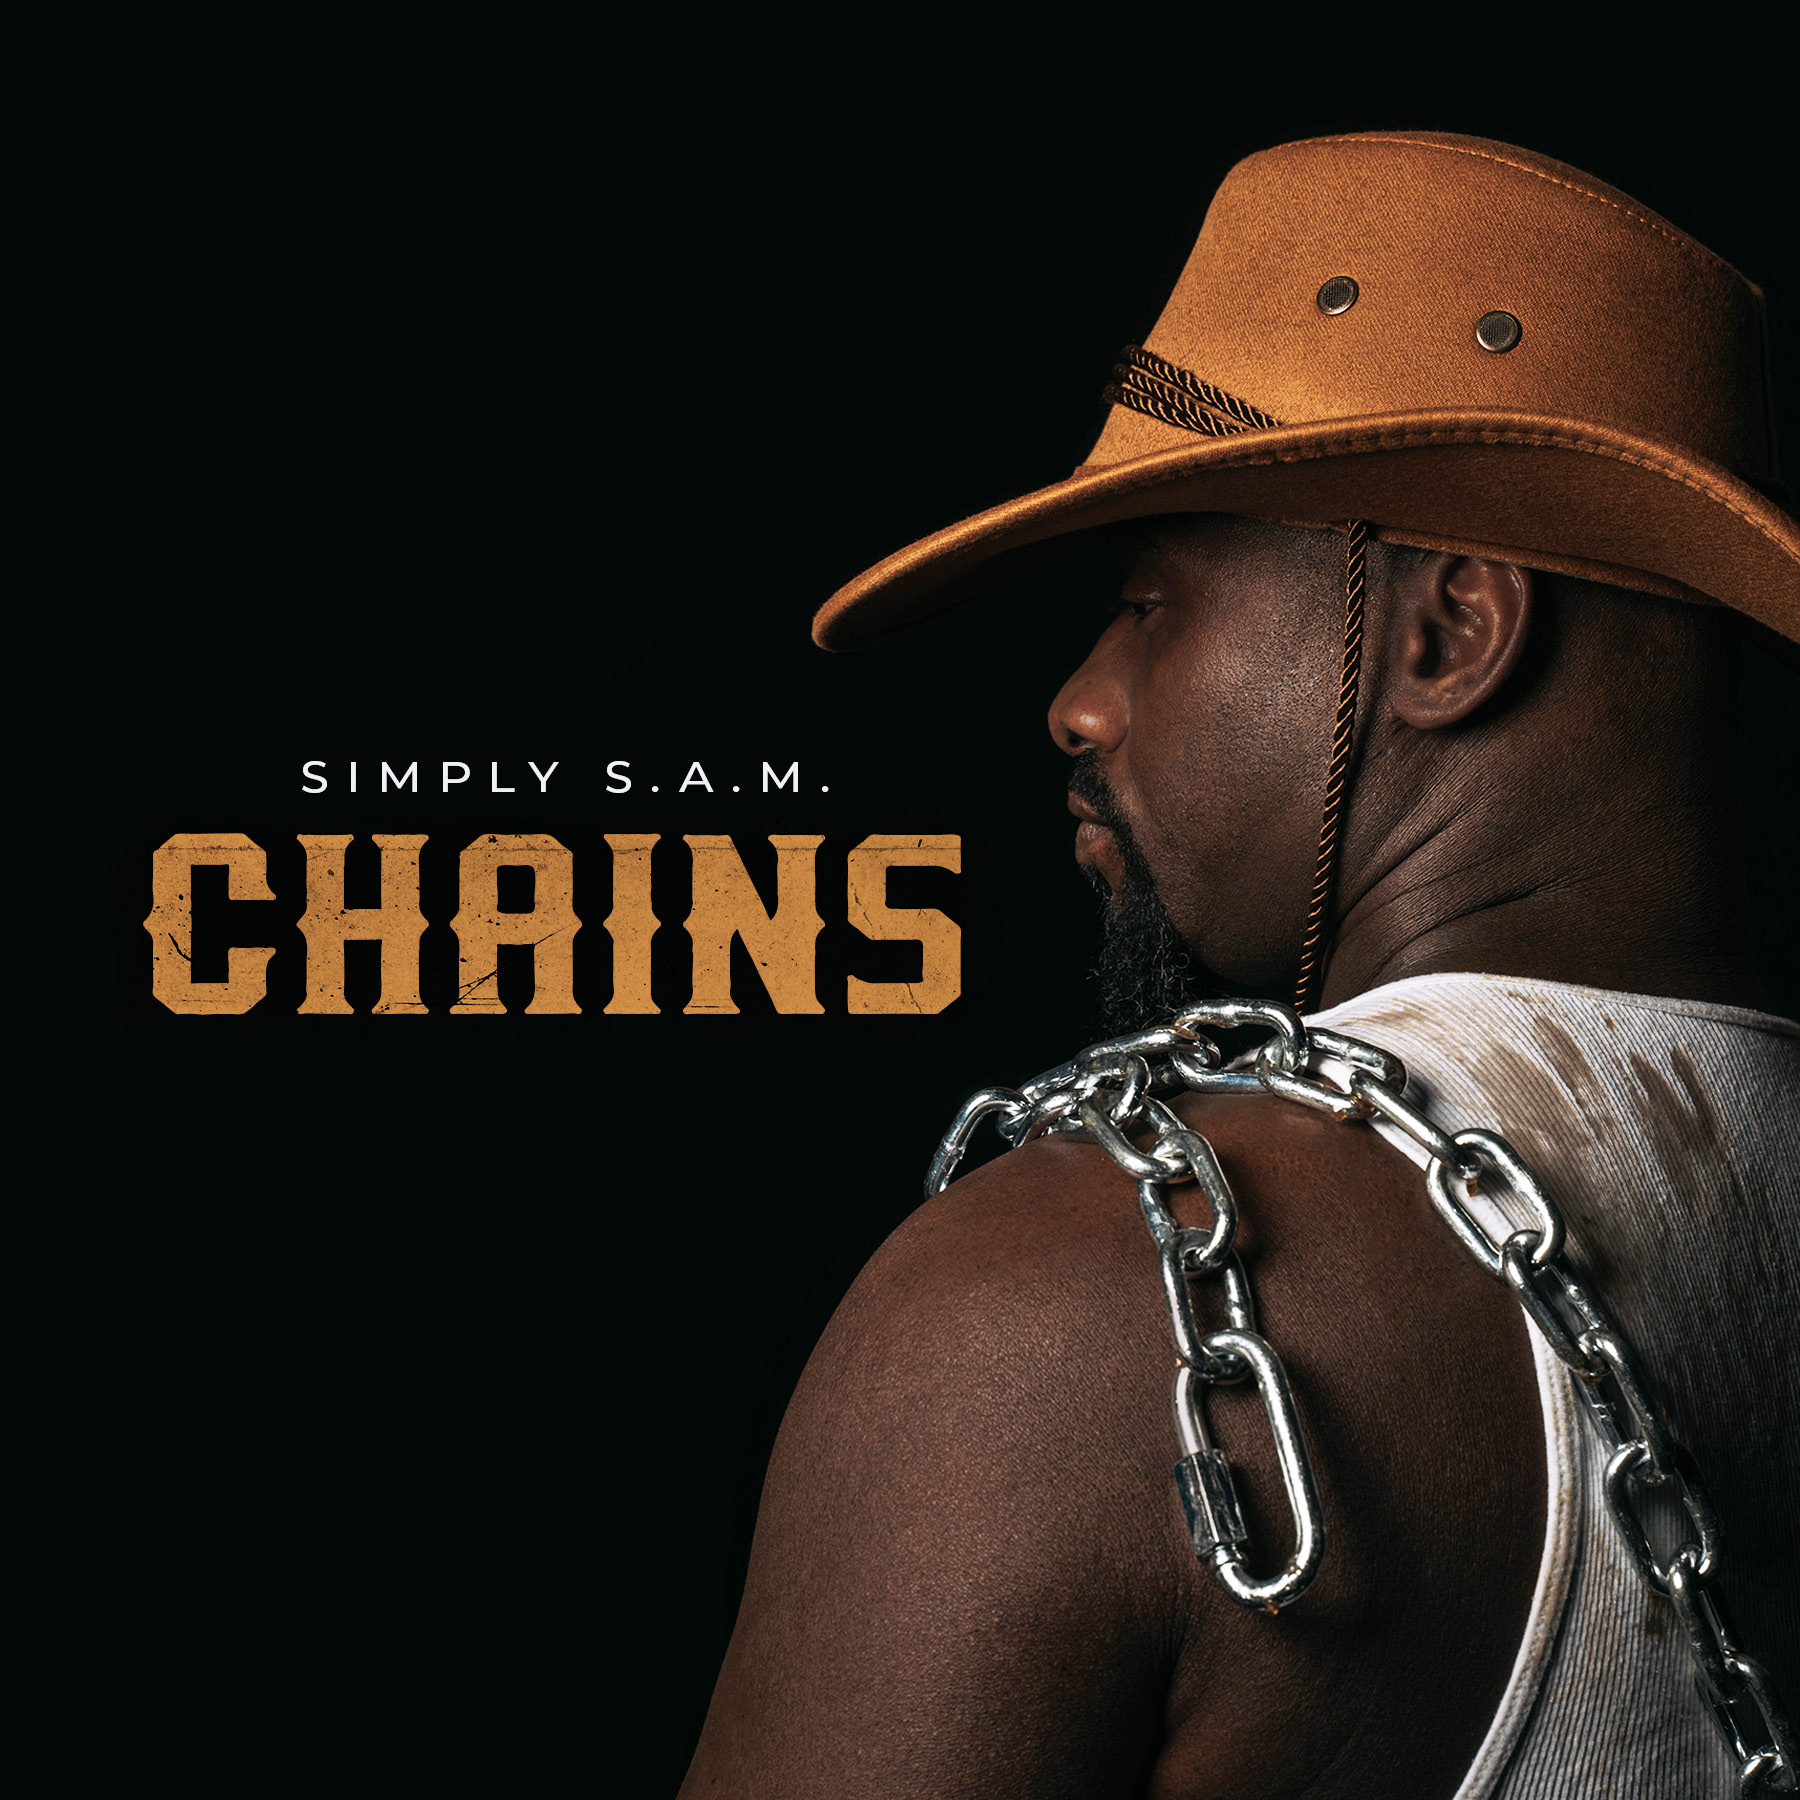 Simply S.A.M. - Chains (Single)